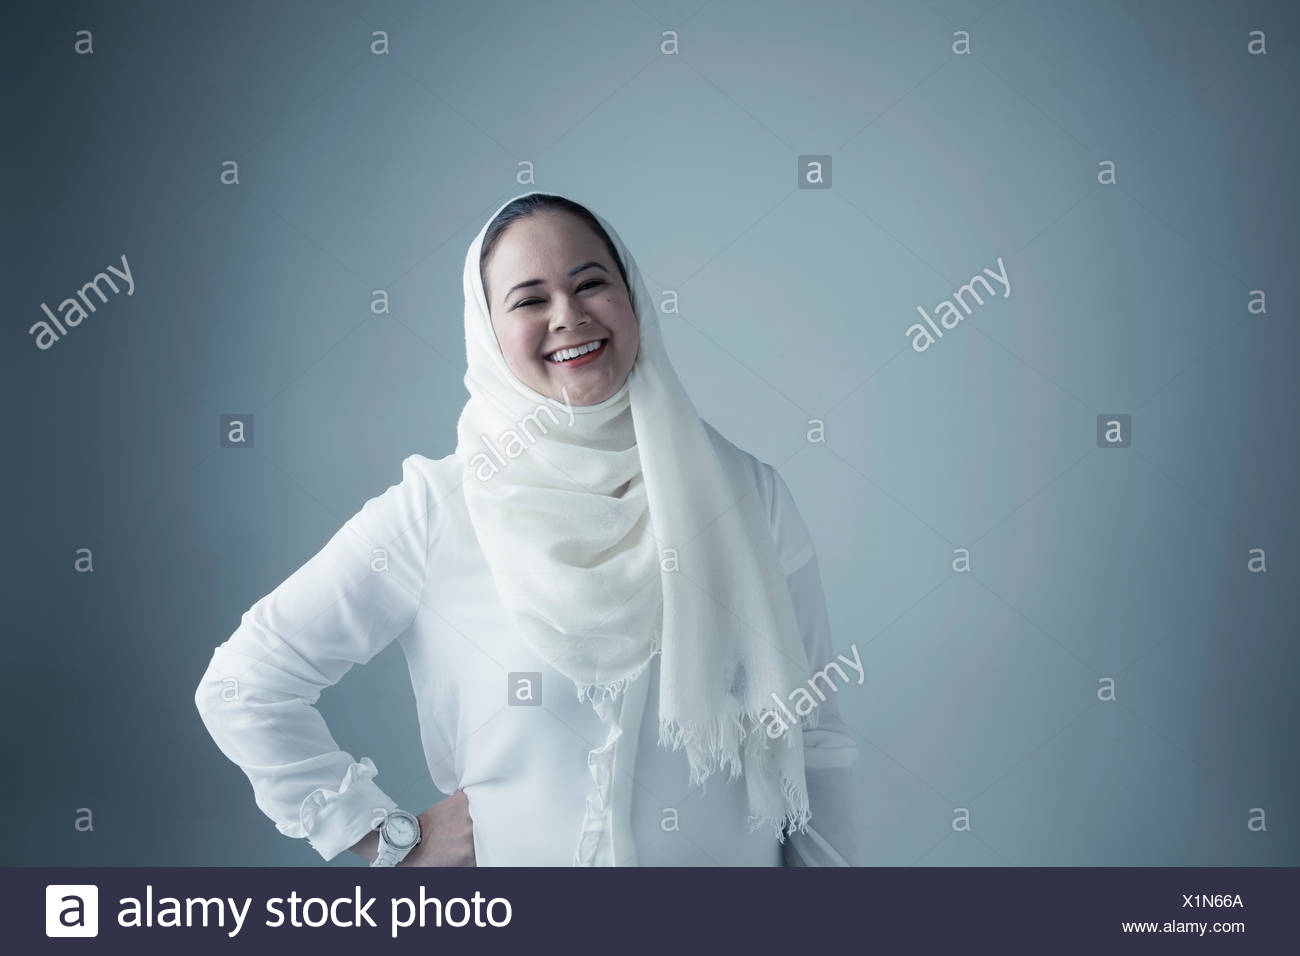 Portrait Middle Eastern young woman in white hijab and burka laughing - Stock Image